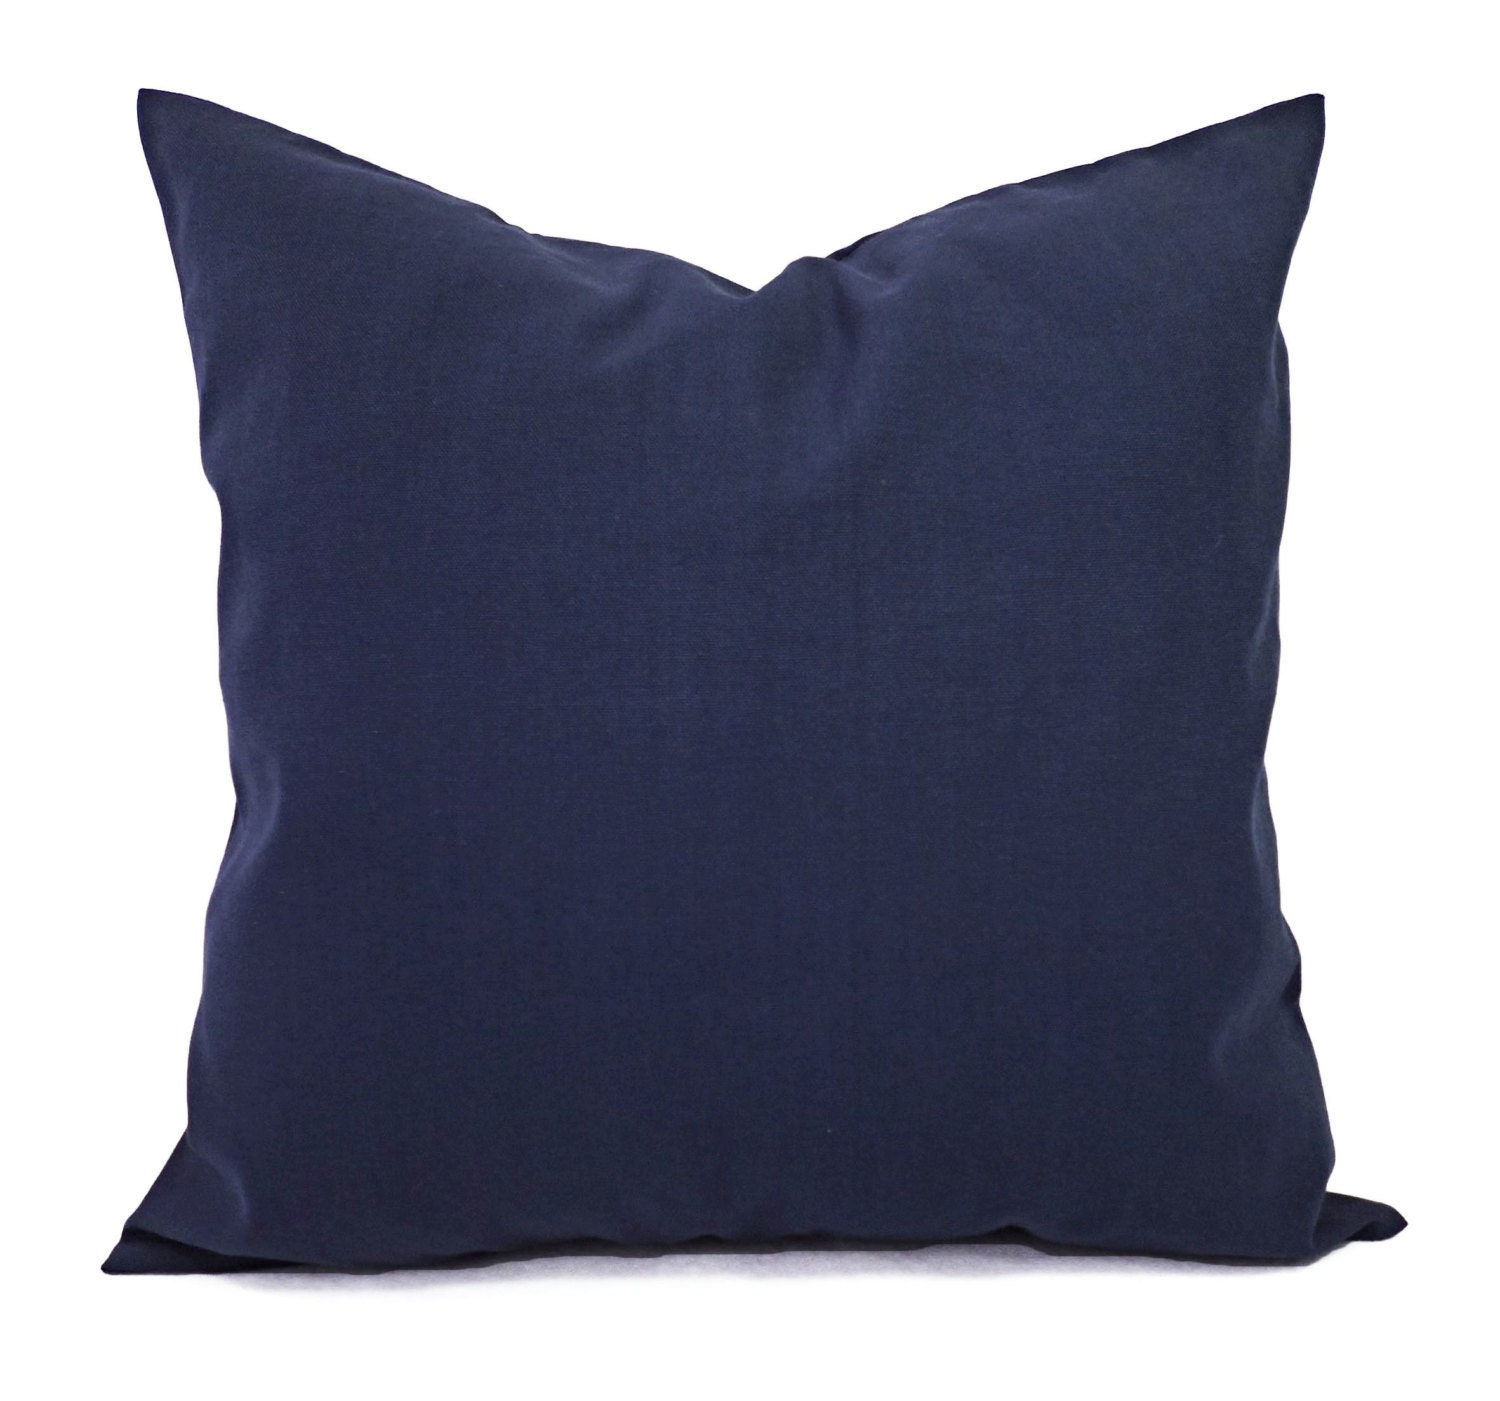 Throw Pillow Covers Set : Two Solid Navy Throw Pillow Covers Navy Couch Pillow Covers